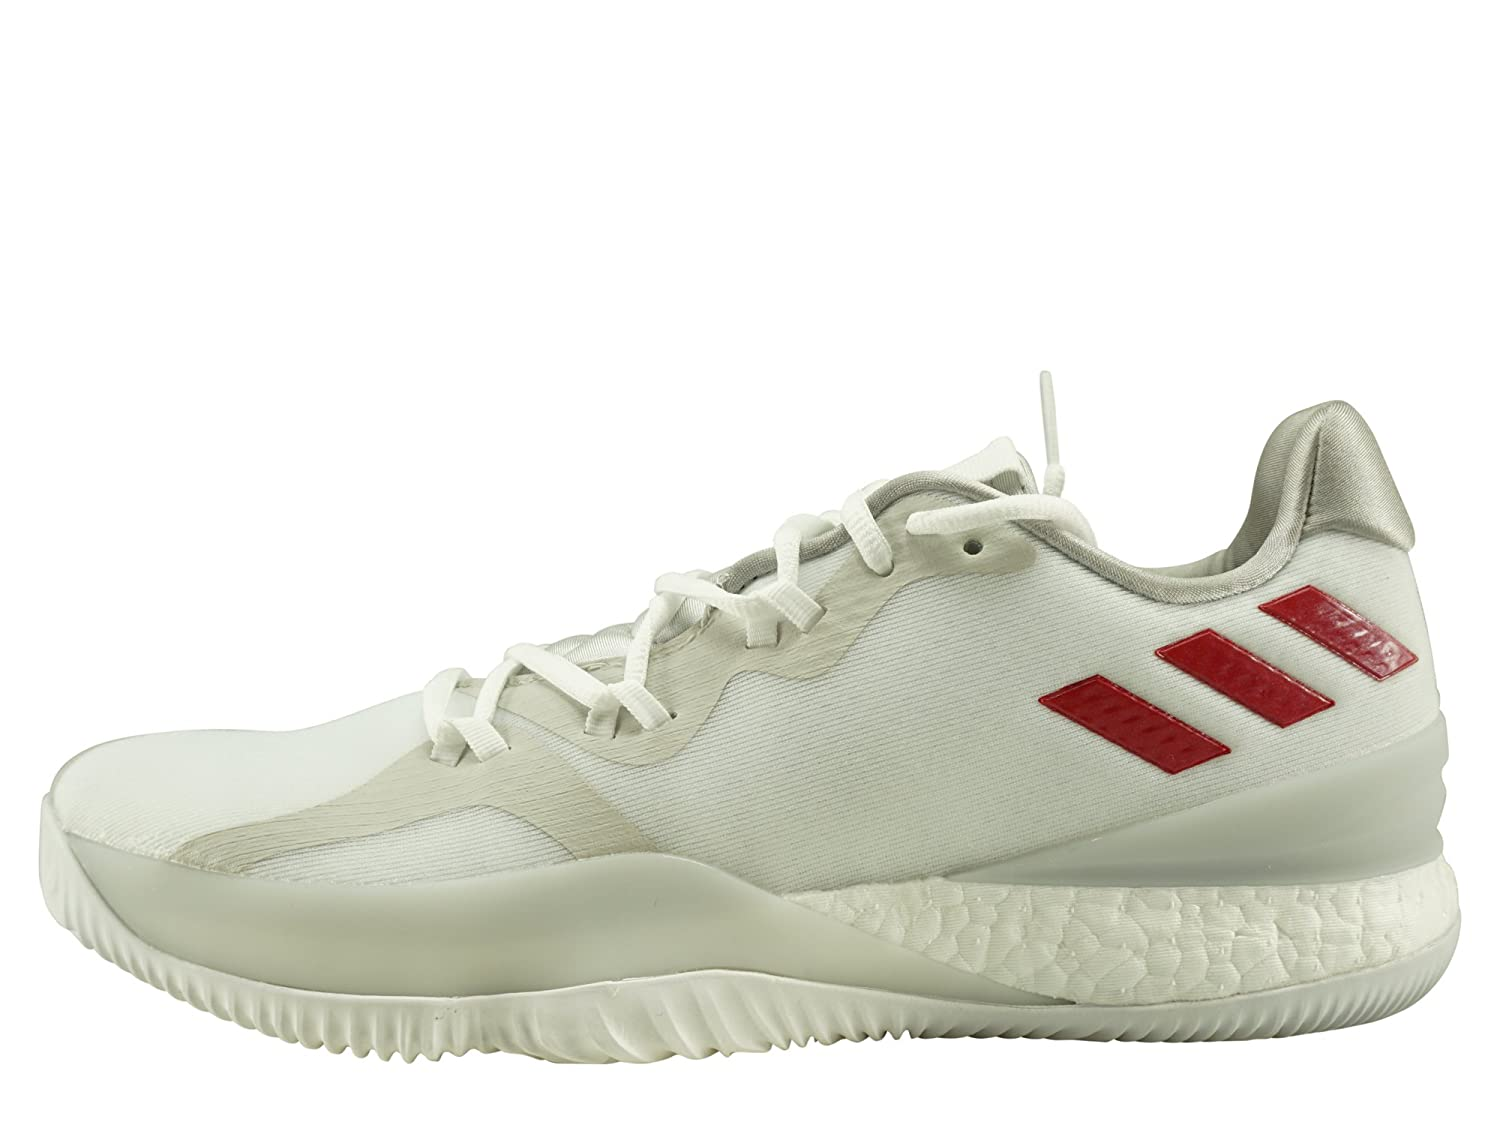 Adidas - Crazylight Boost 2018 - Color  White-Red - Size  12.0US   Amazon.ca  Shoes   Handbags cd05c7b2b